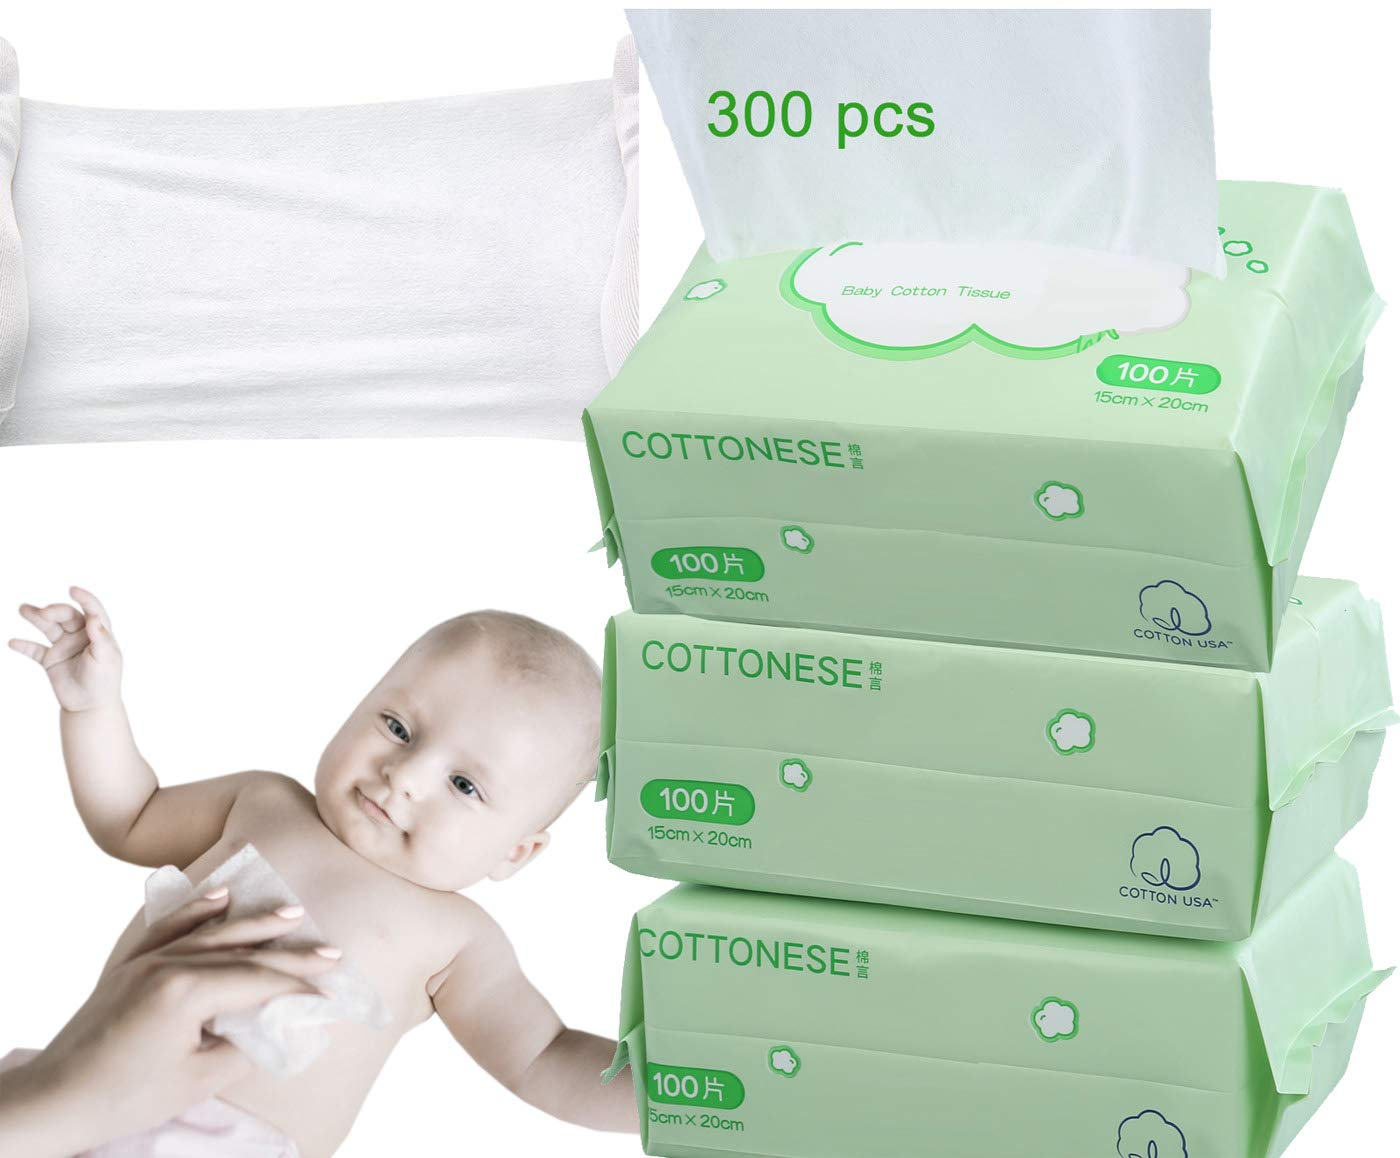 Baby Child Dry Wipe Soft Dry Cotton Wipes 3 Packs 300 Count,Disposable Cleansing Cloths,Great for Sensitive Skin and can be used as Baby Washcloths